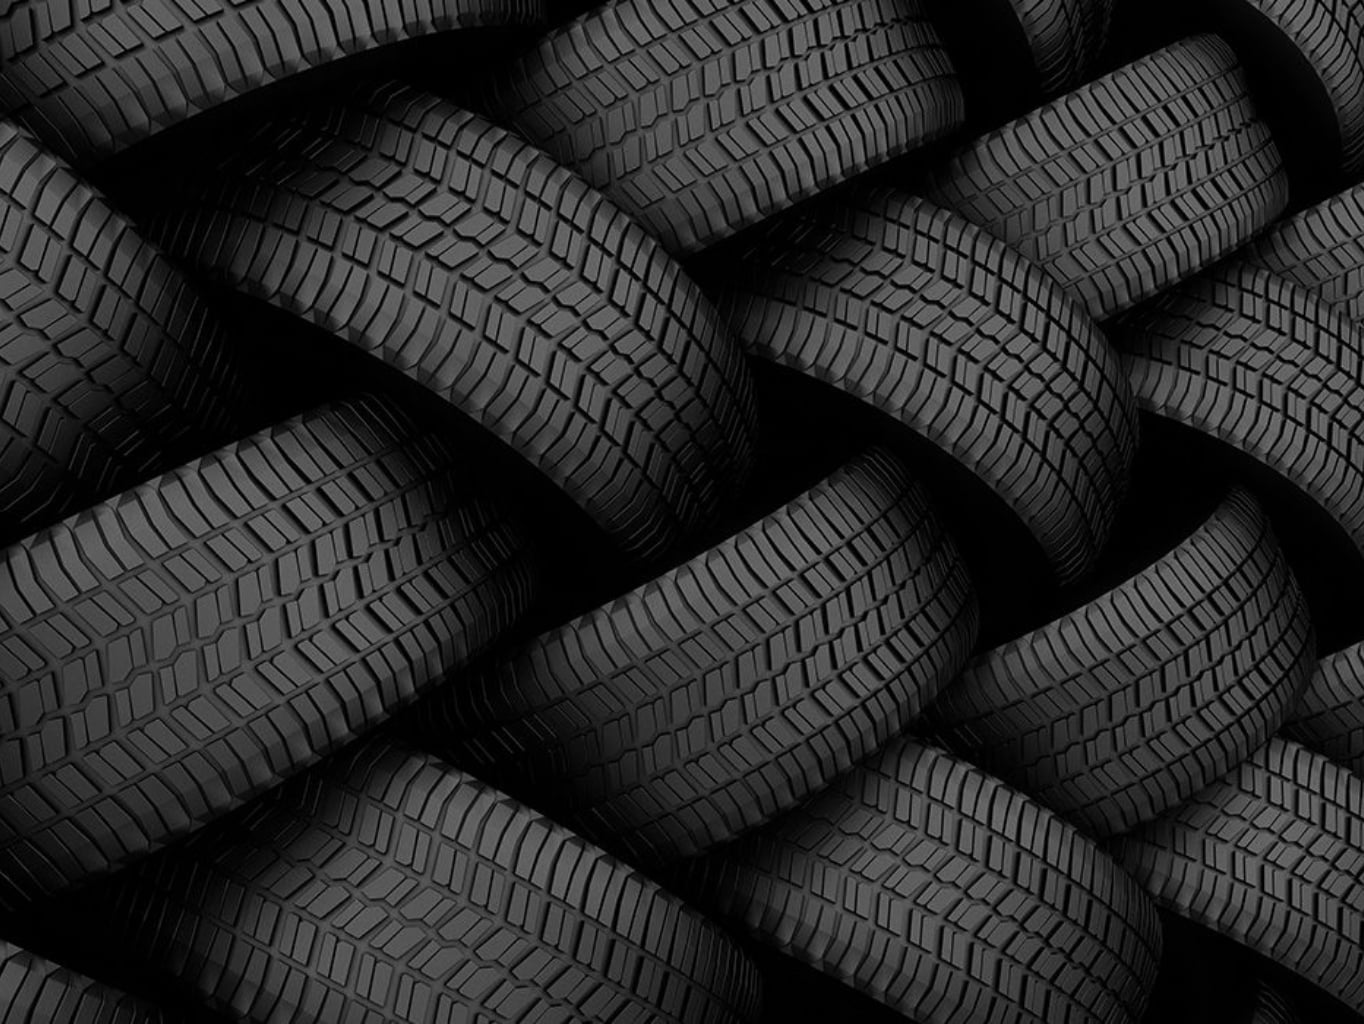 Contact us today for all your rubber crumb needs